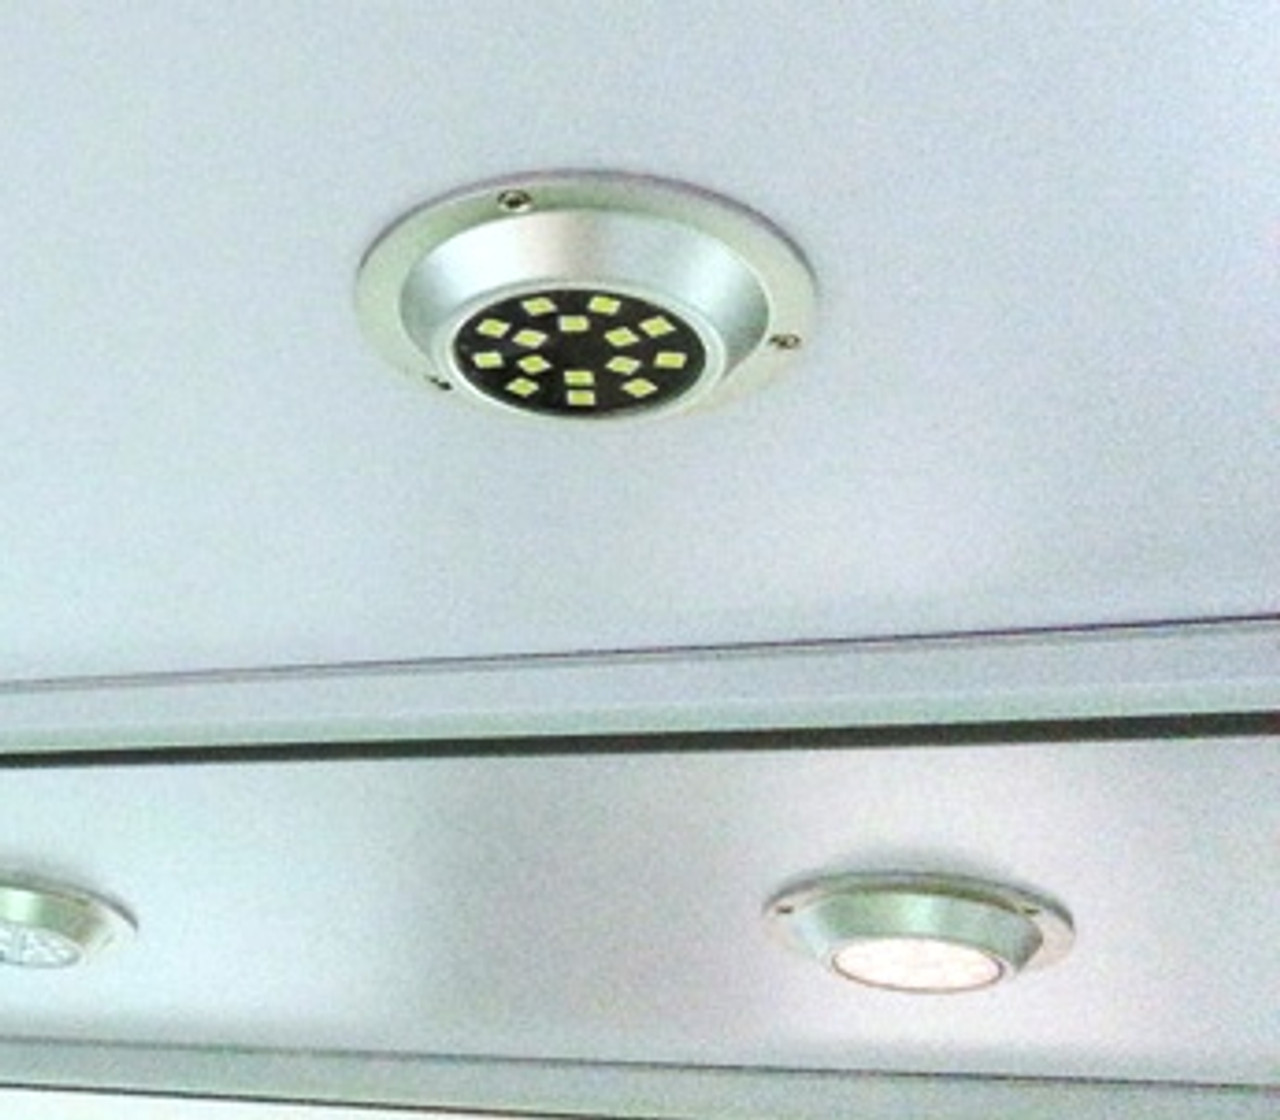 Great LED lights for indoor or outdoor use